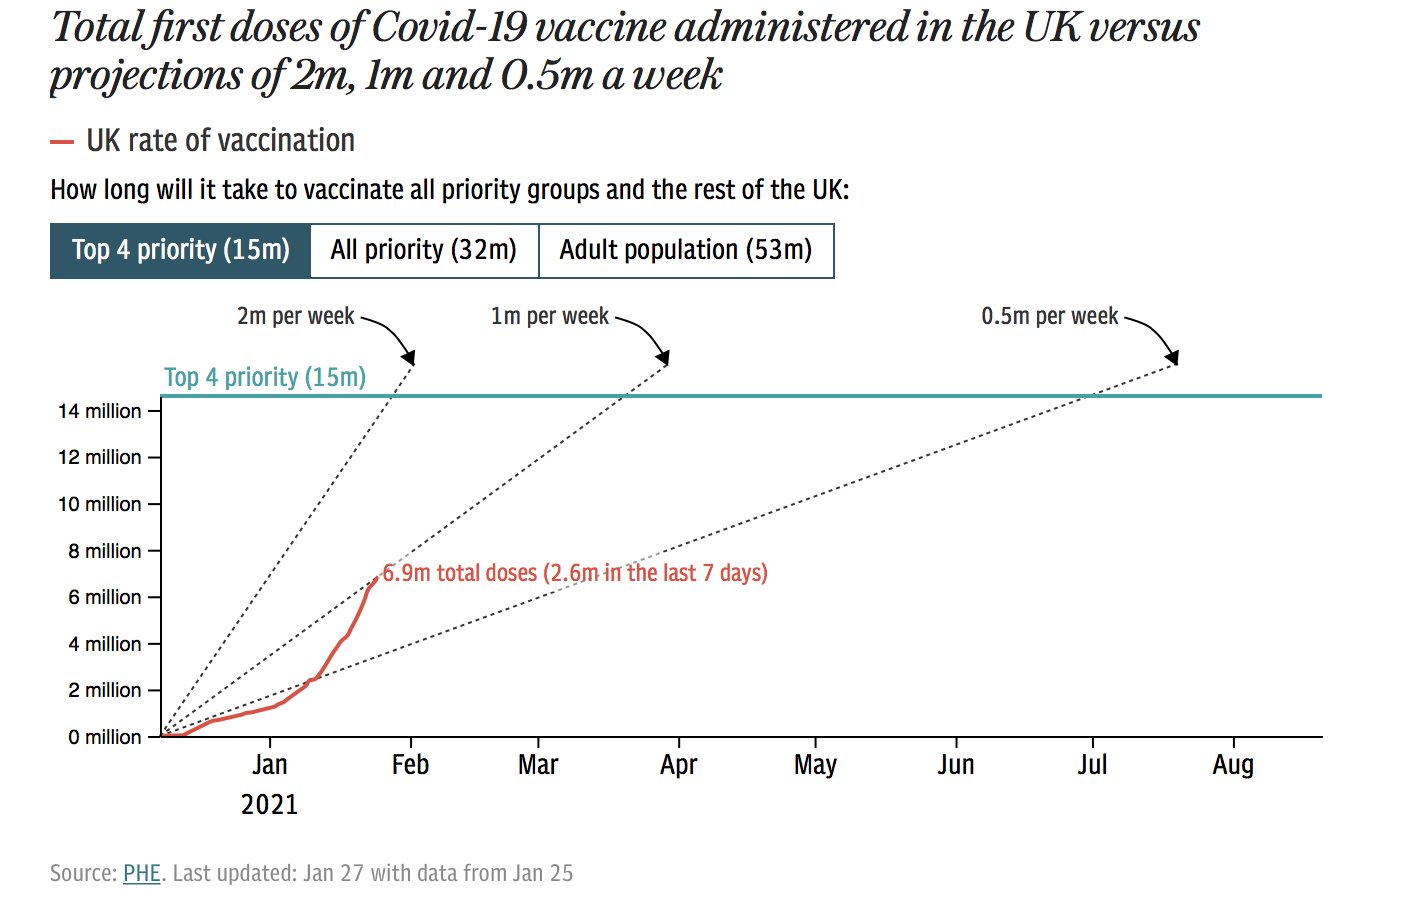 Gamechanger - How has the COVID-19 vaccine been developed and rolled out so quickly?